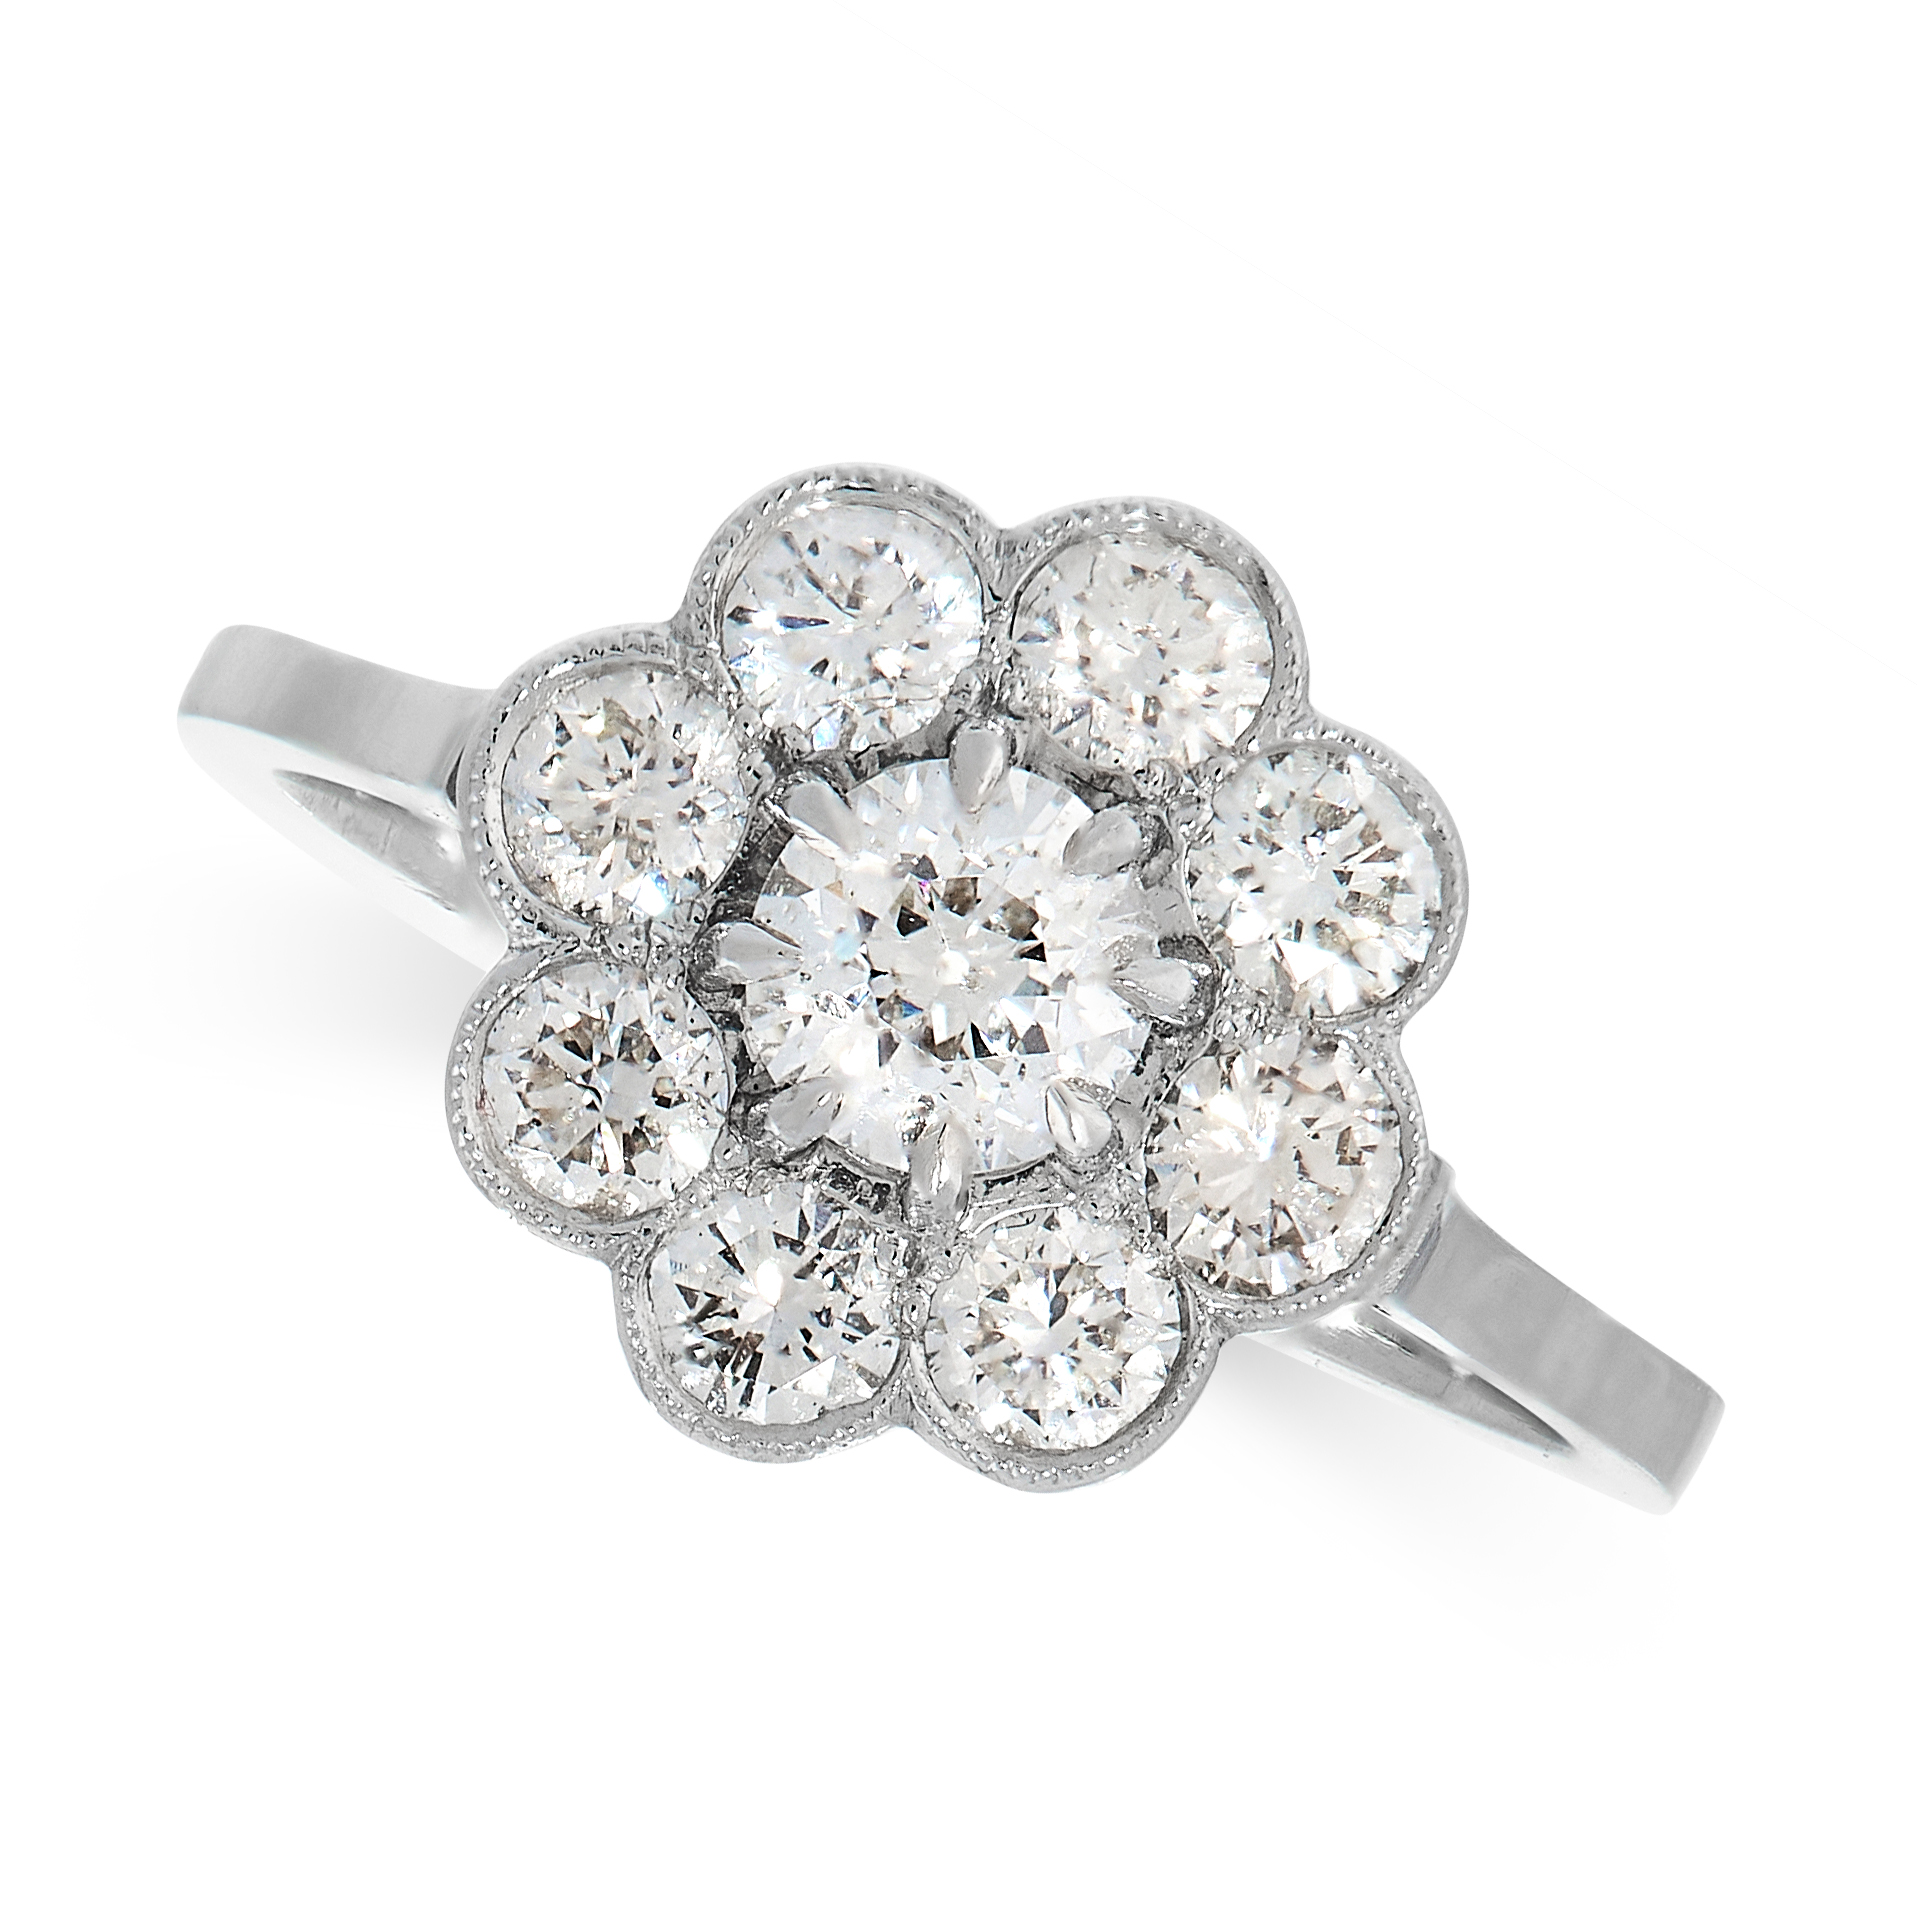 DIAMOND CLUSTER RING comprising of a cluster of round cut diamonds, unmarked, size N / 6.5, 3.7g.